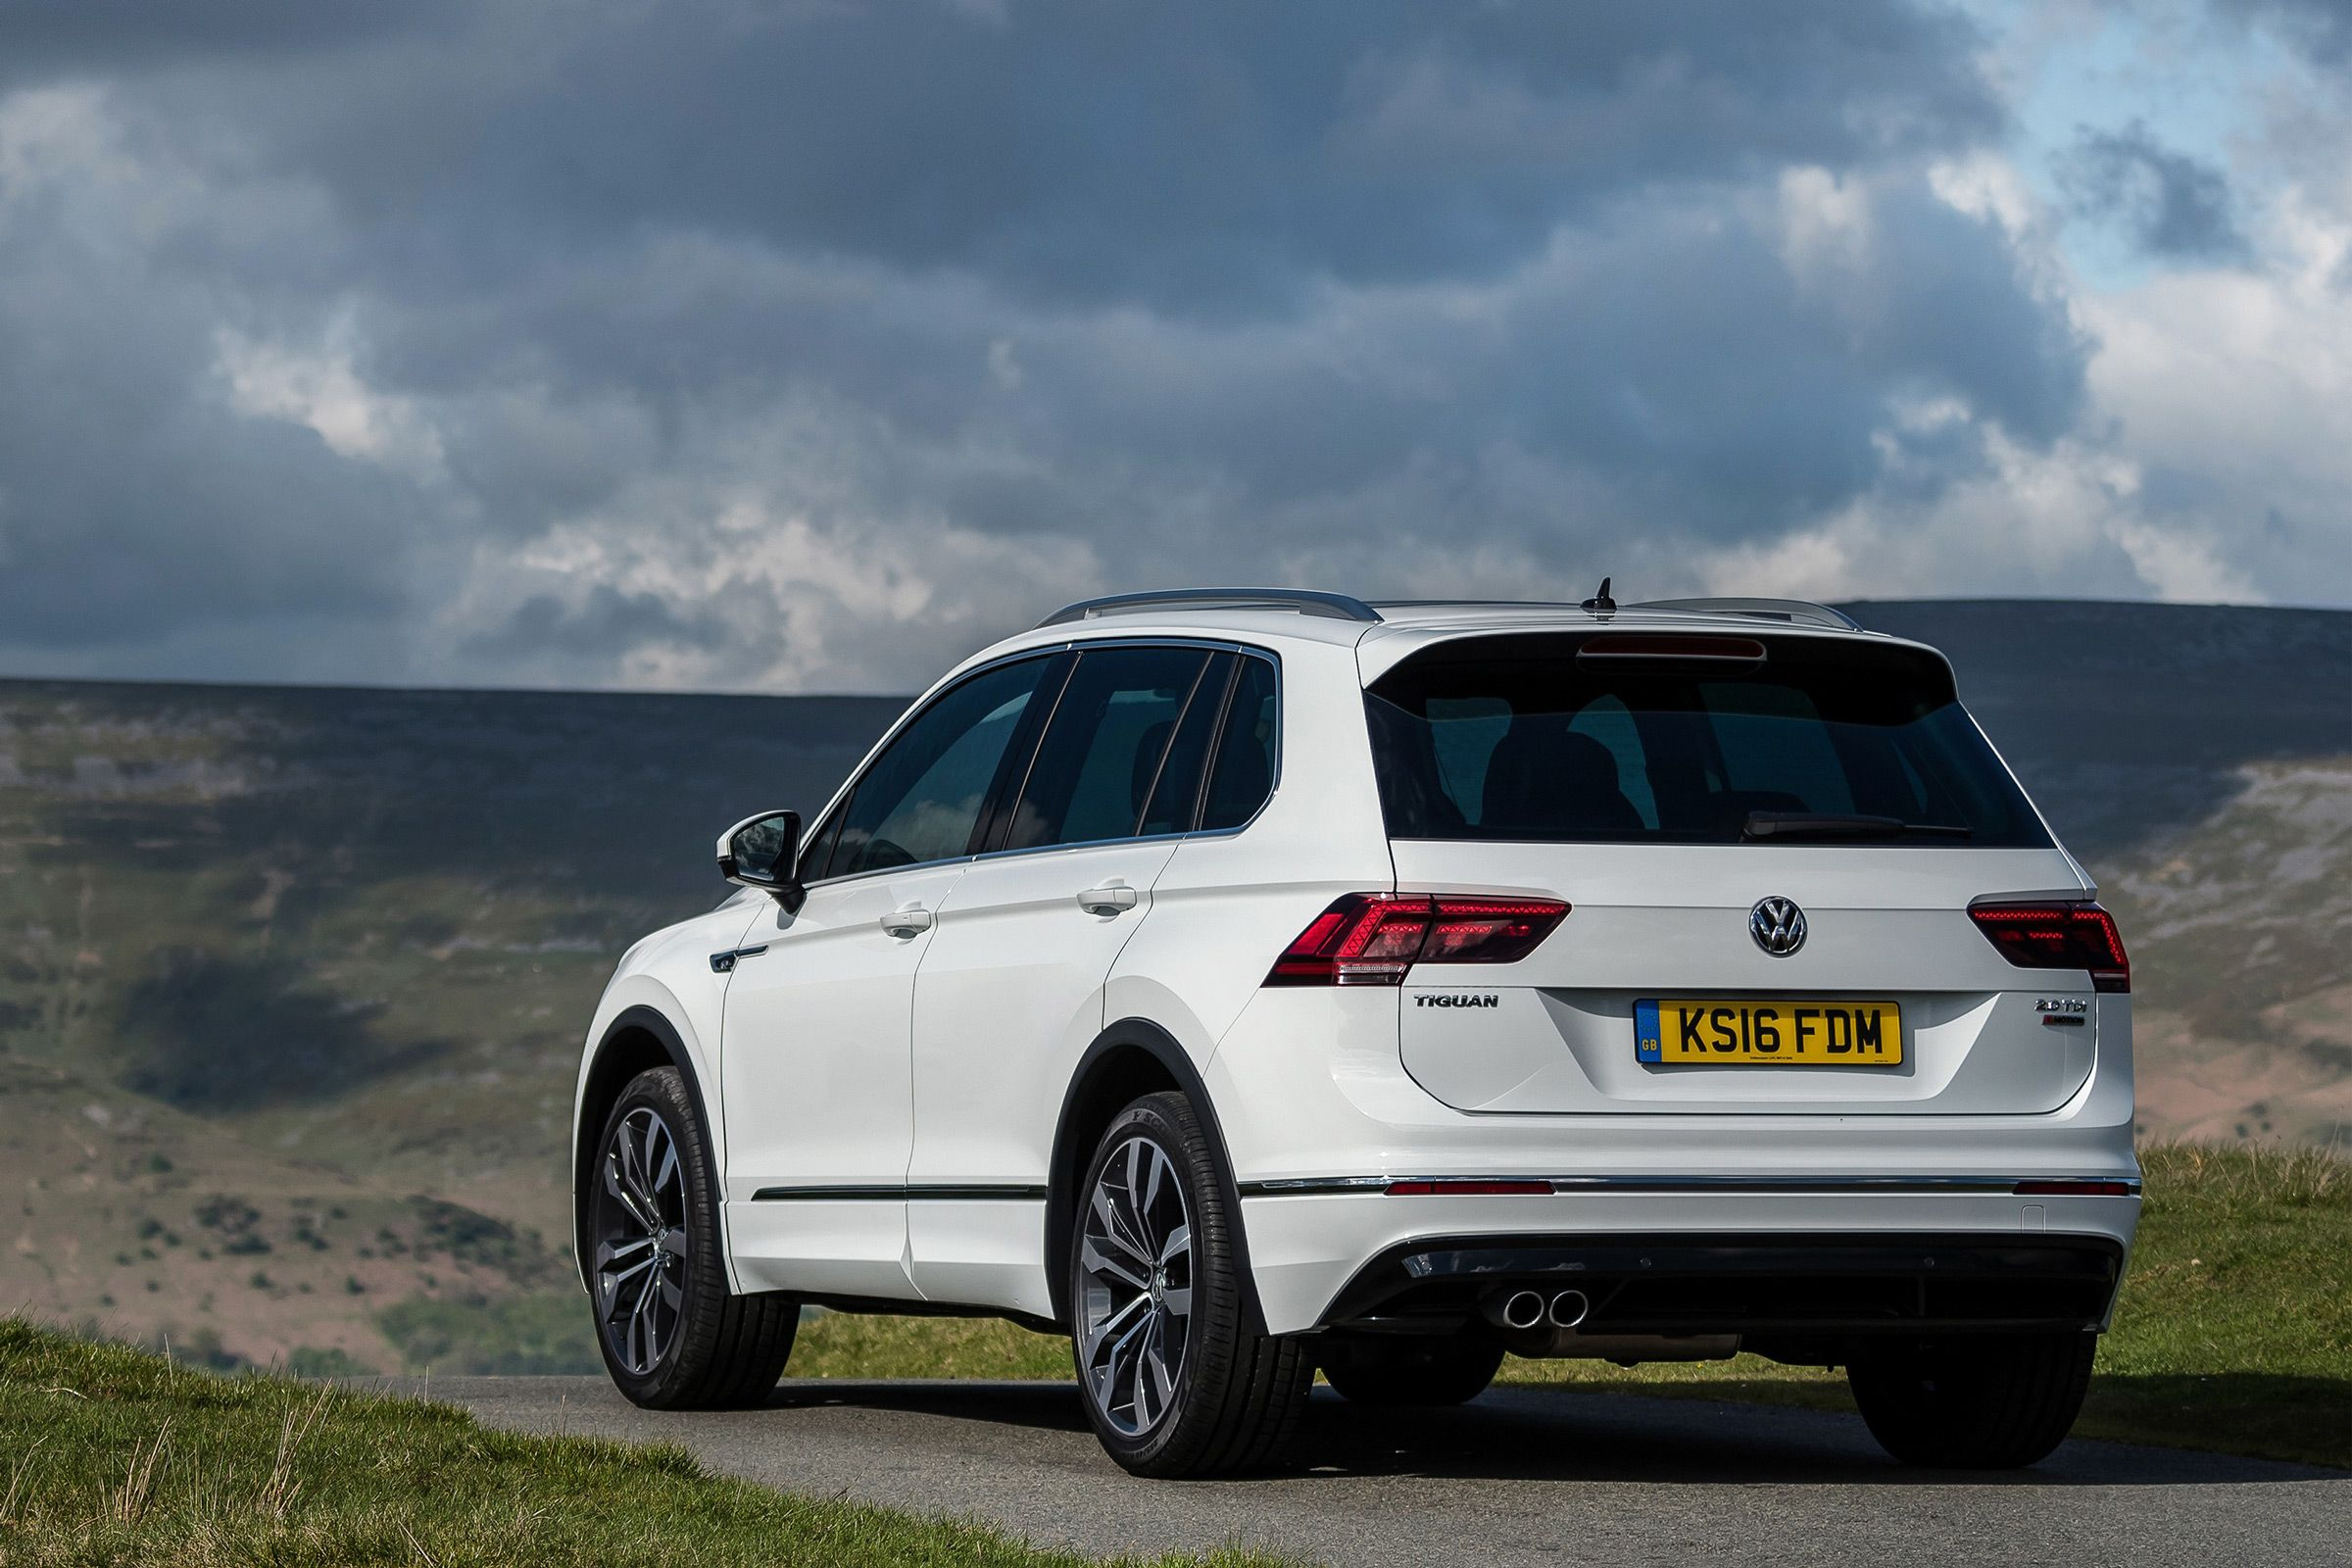 Volkswagen tiguan 1 4 tsi 110 kw dsg 2016 review cars co za vw pinterest volkswagen cars and compact suv